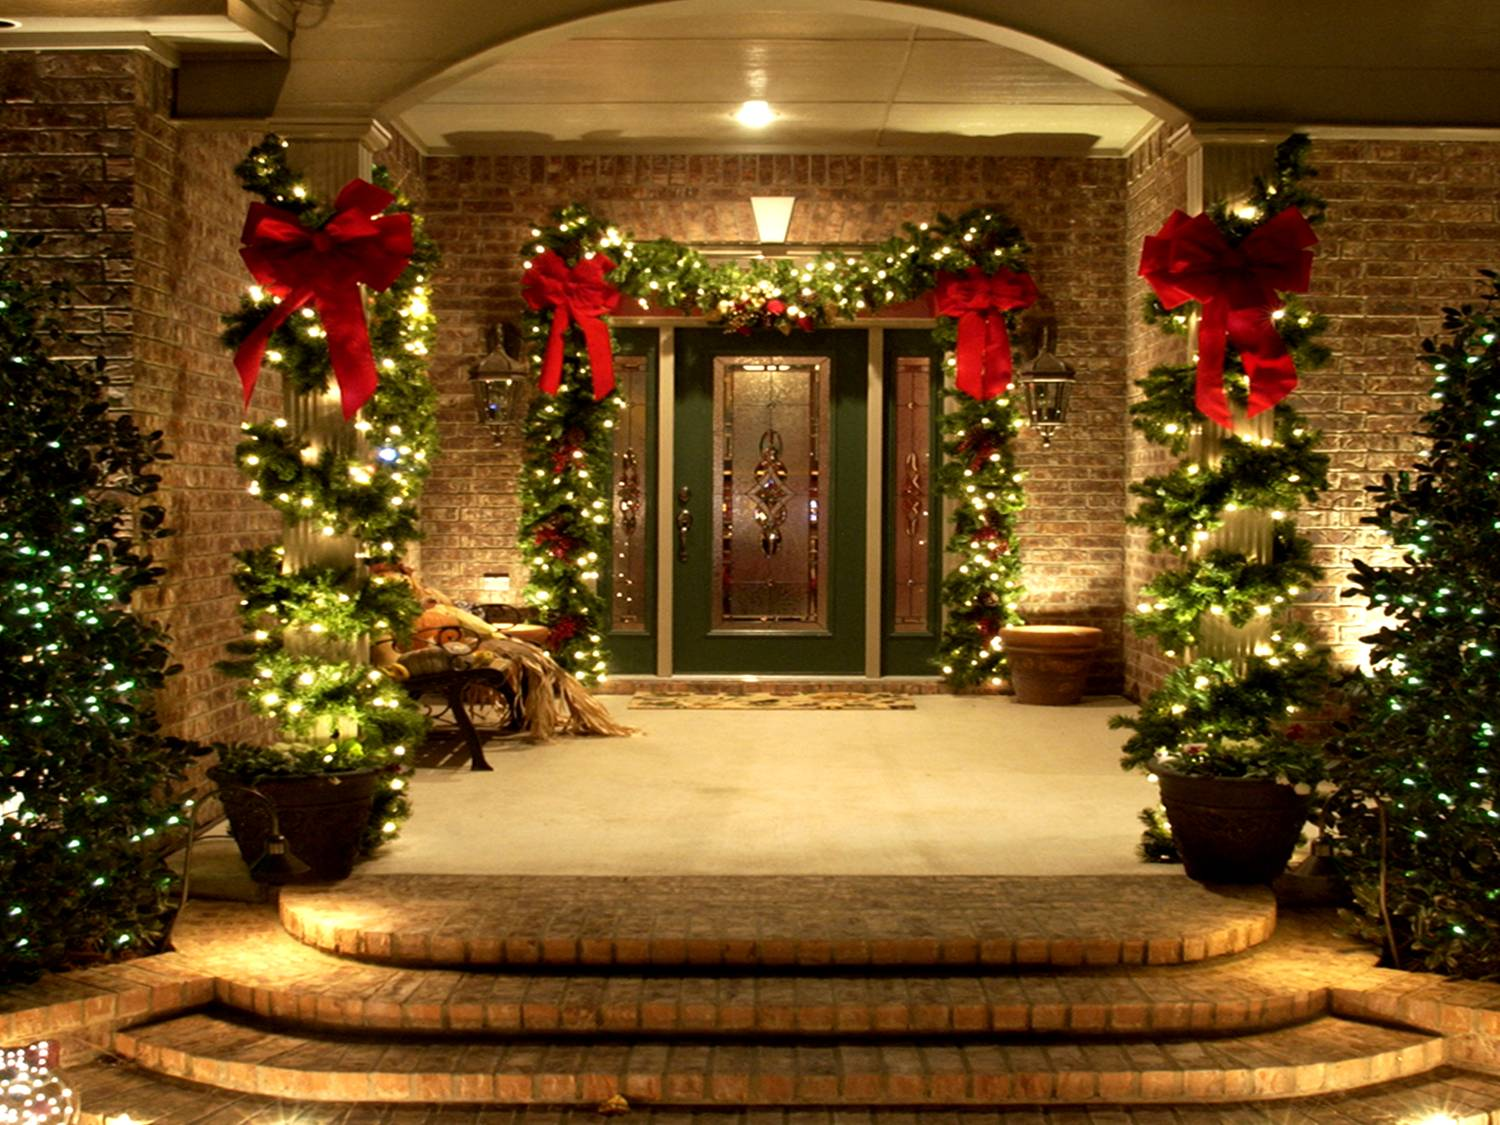 Christmas Decorations (10)